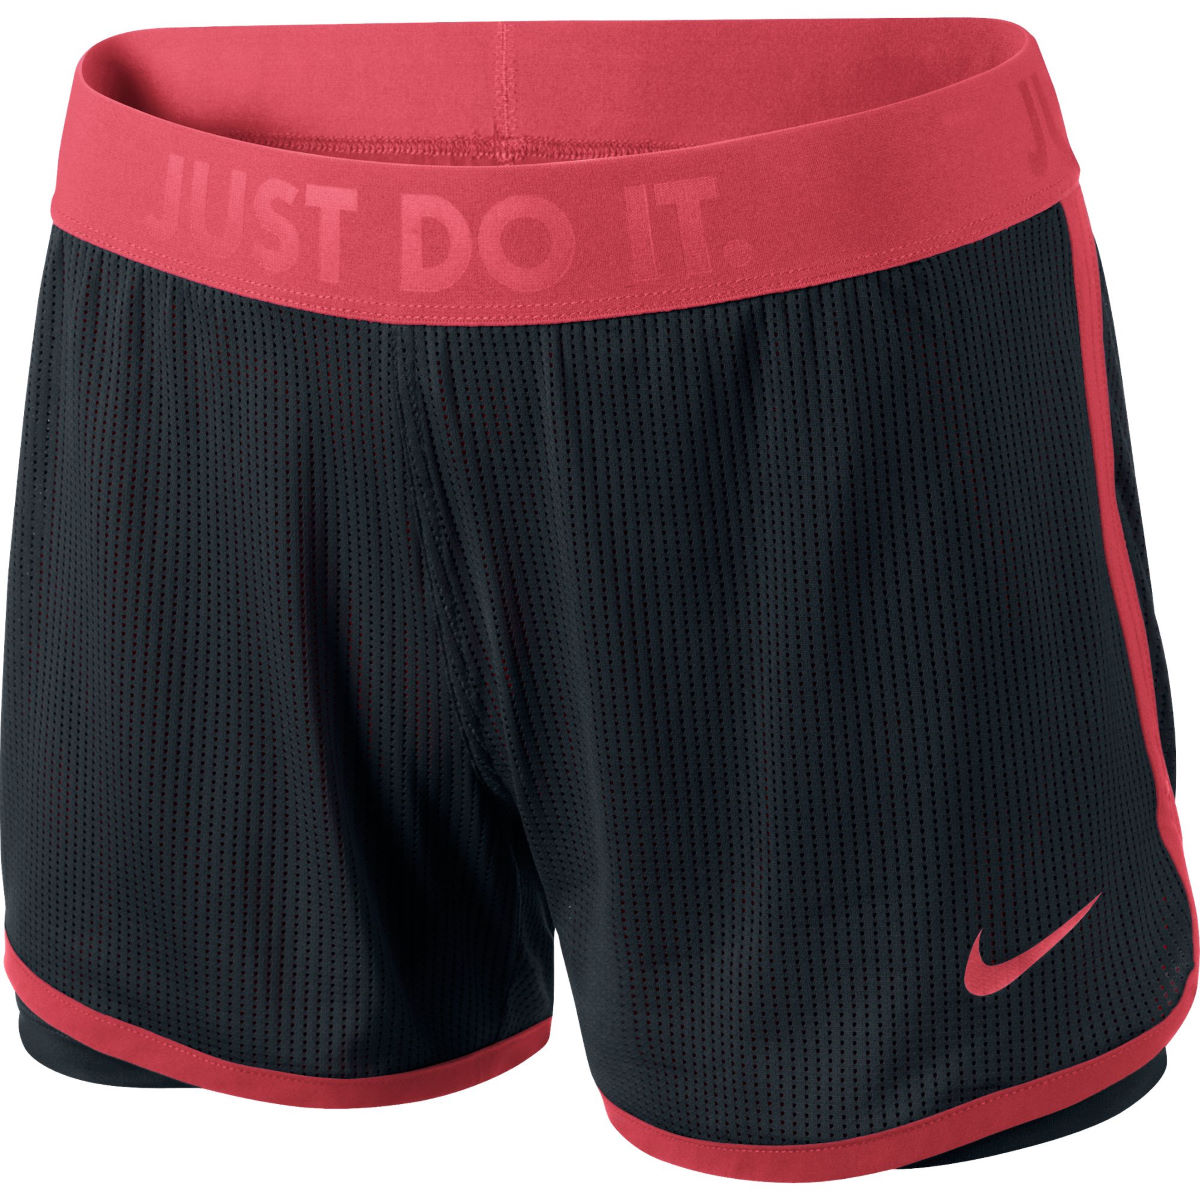 Nike Women's Training 2-in-1 Mesh Short - SU14